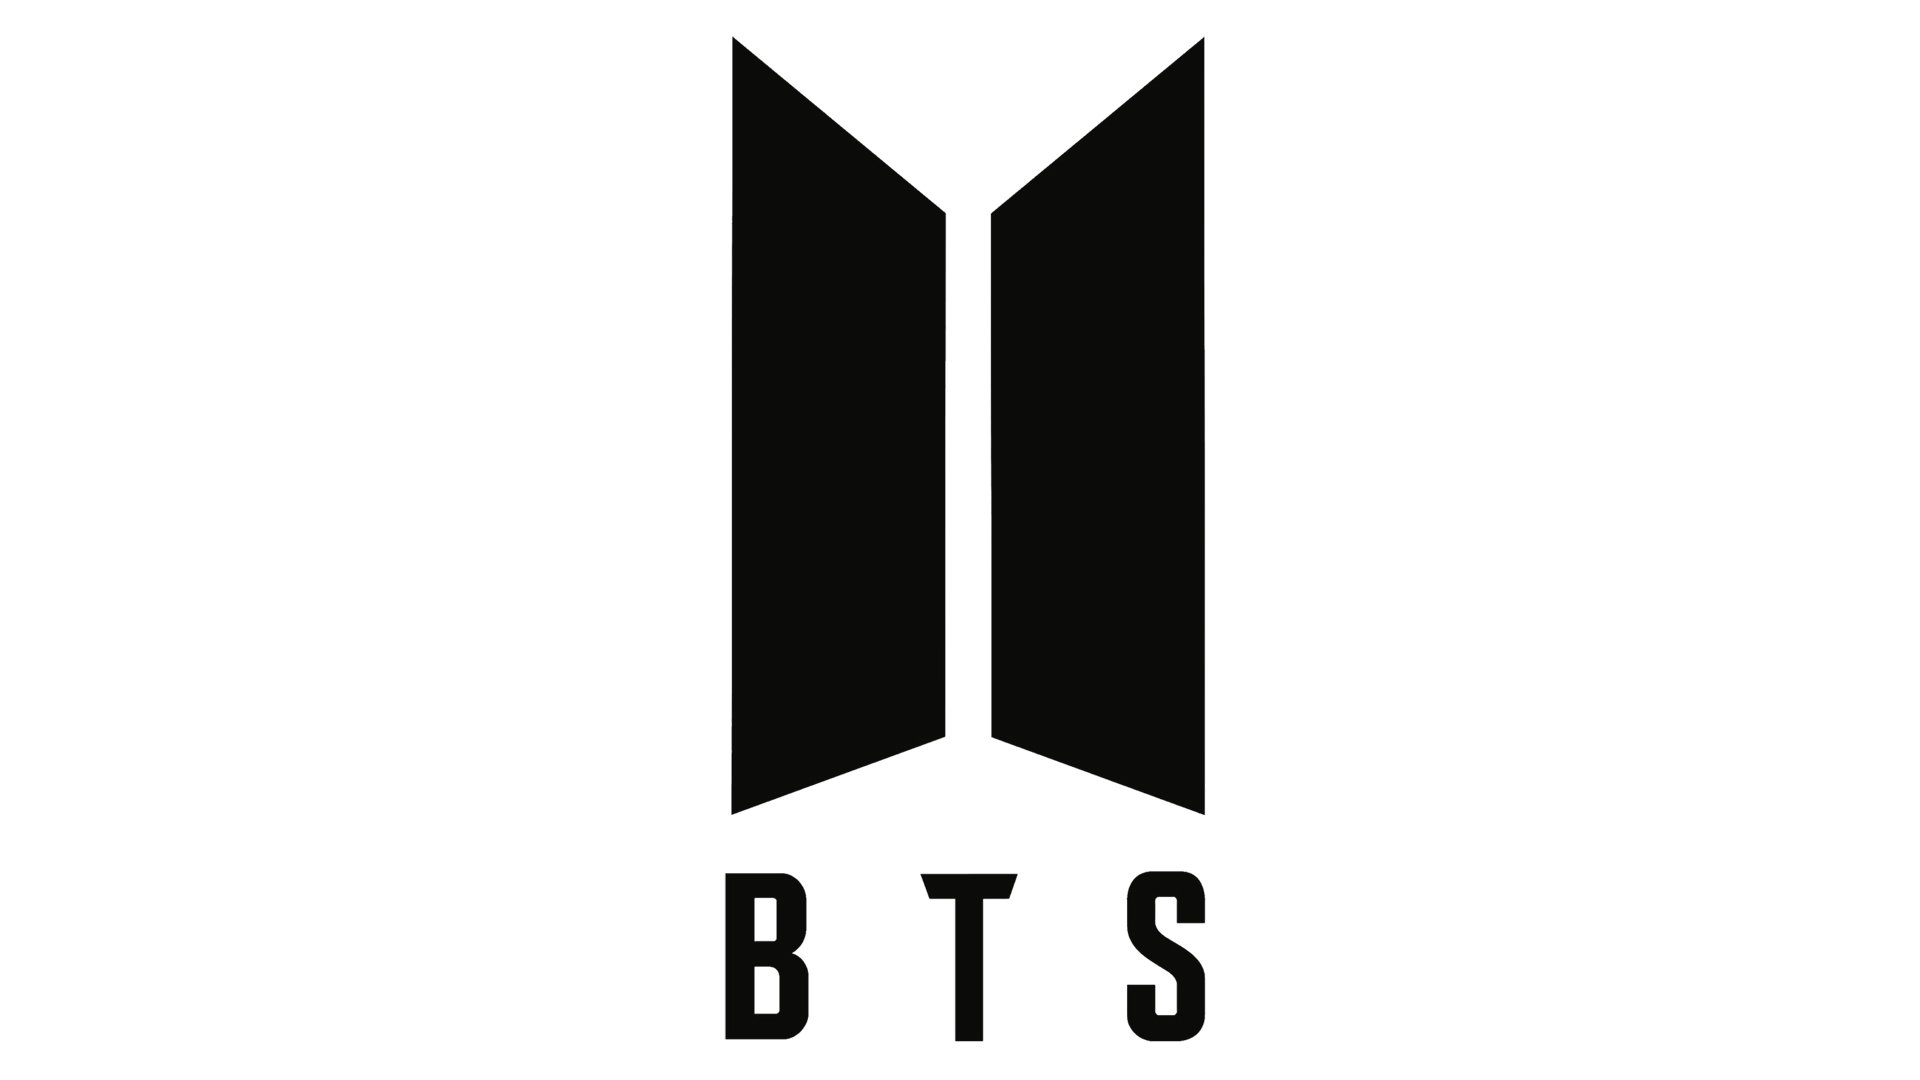 Bts Logo Symbol Meaning History And Evolution